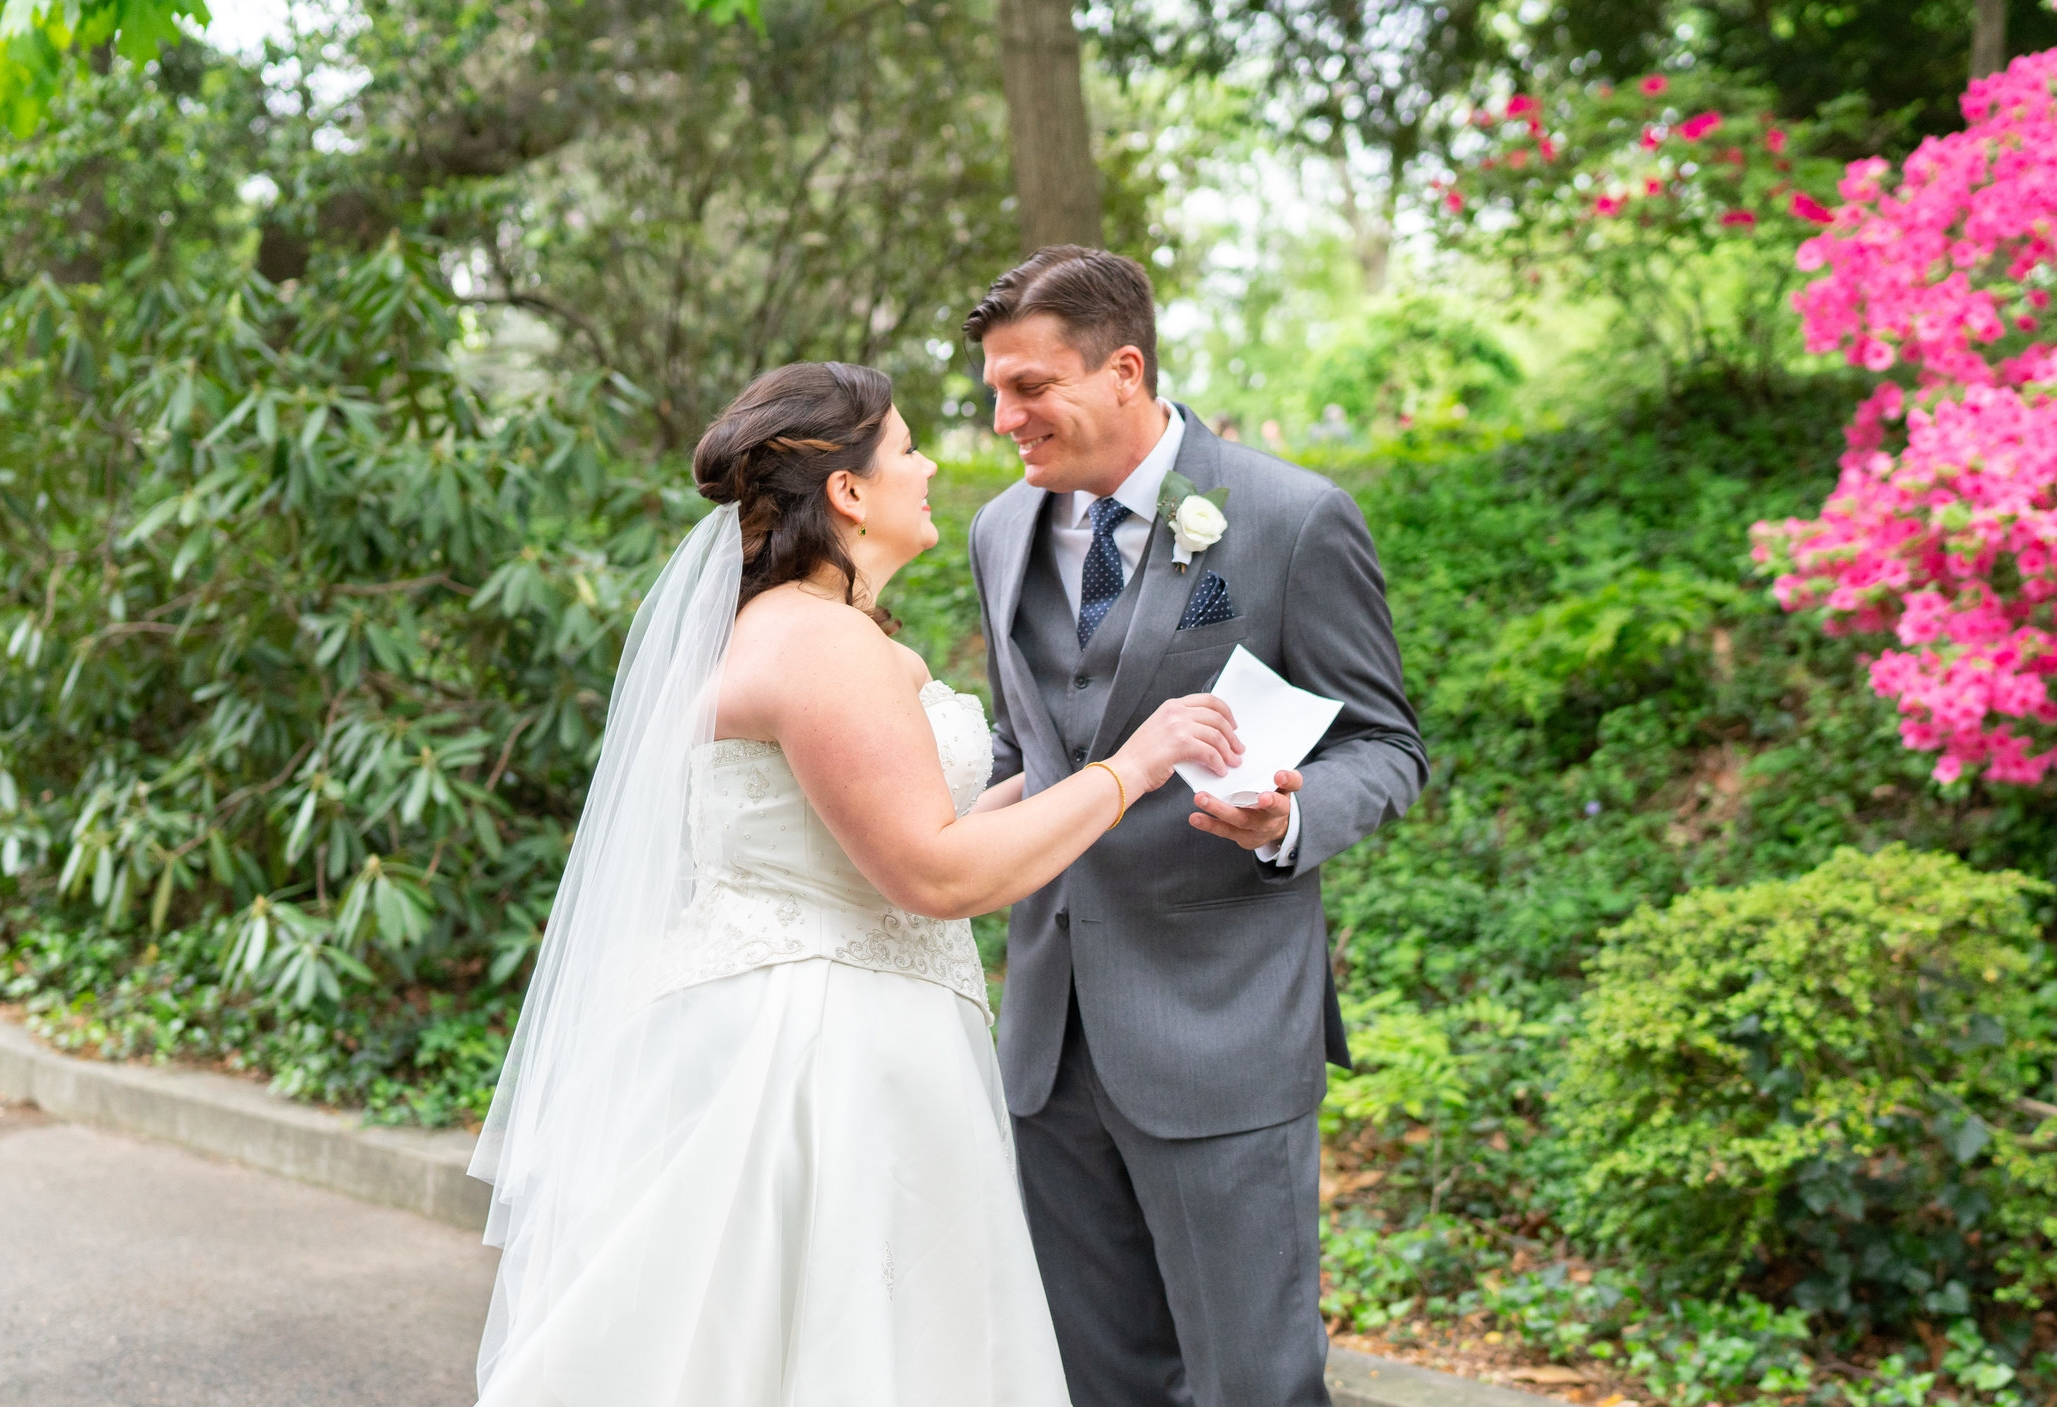 Bride giving her groom a letter during their first look at Hendry House